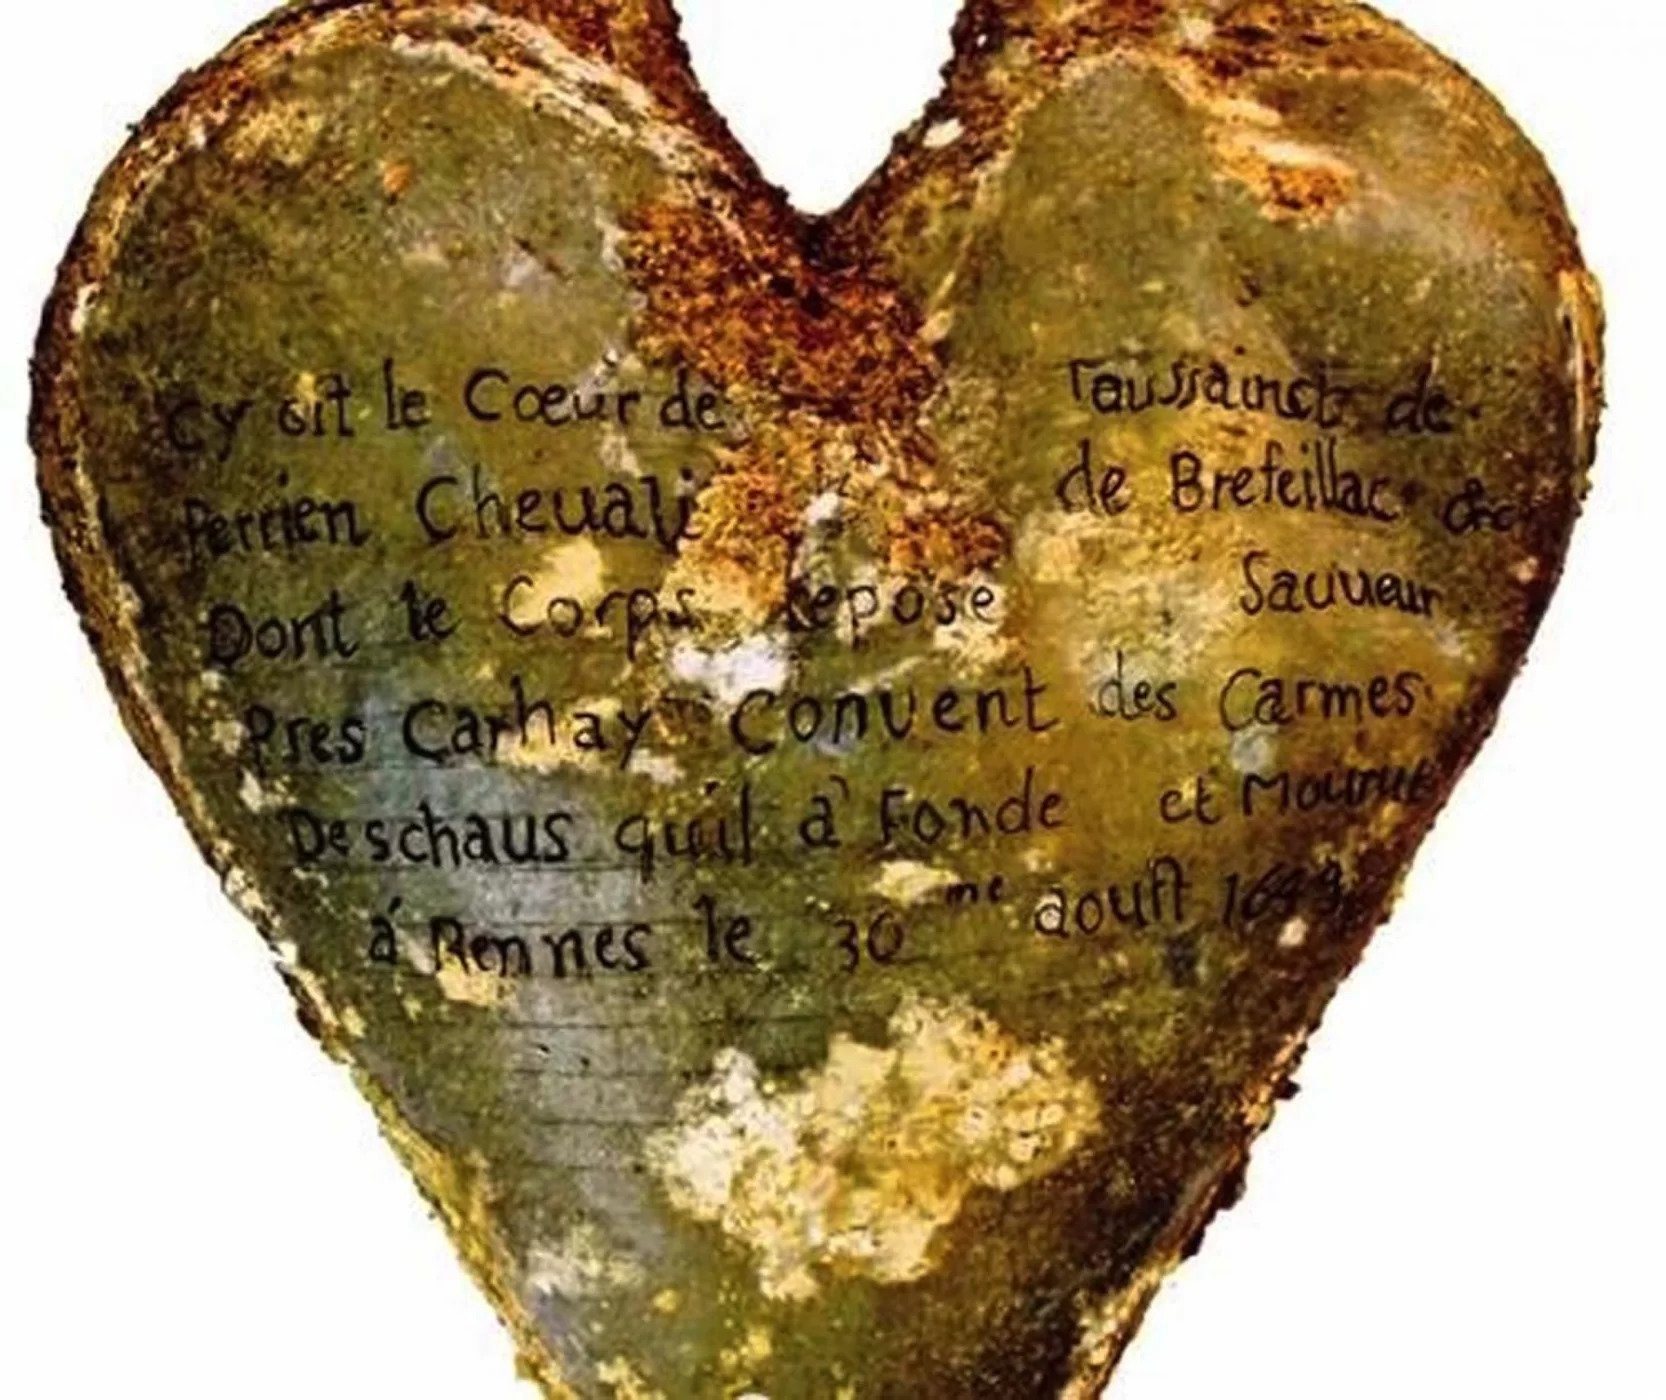 This is a heart-shaped lead urn with an inscription identifying the contents as the heart of Toussaint Perrien, Knight of Brefeillac.